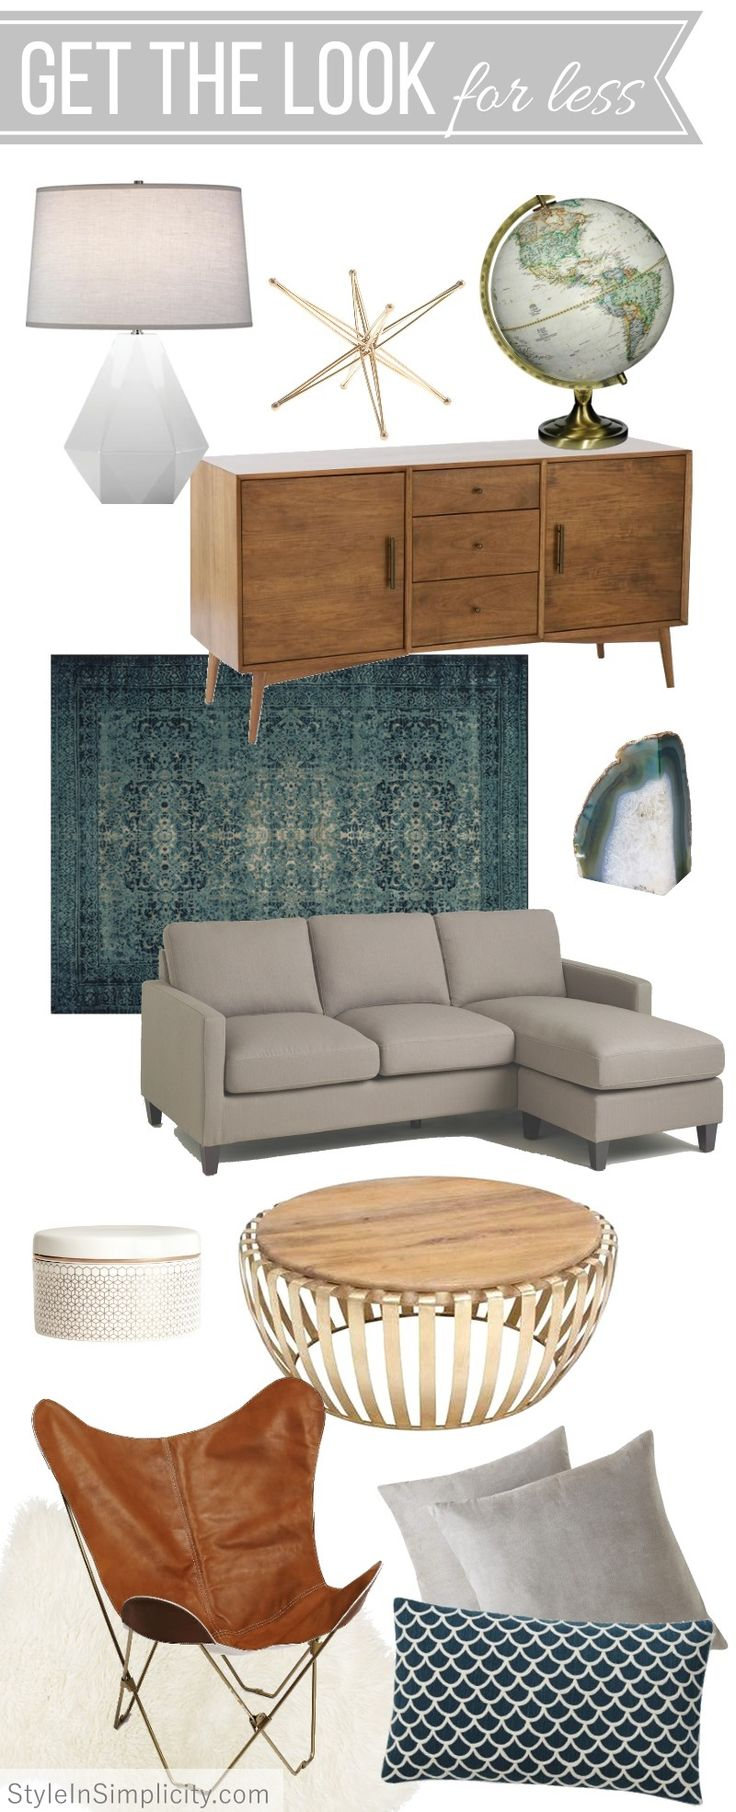 Mid-century Modern Inspired Living Room // Get the Look for Less | eDesign by Style In Simplicity